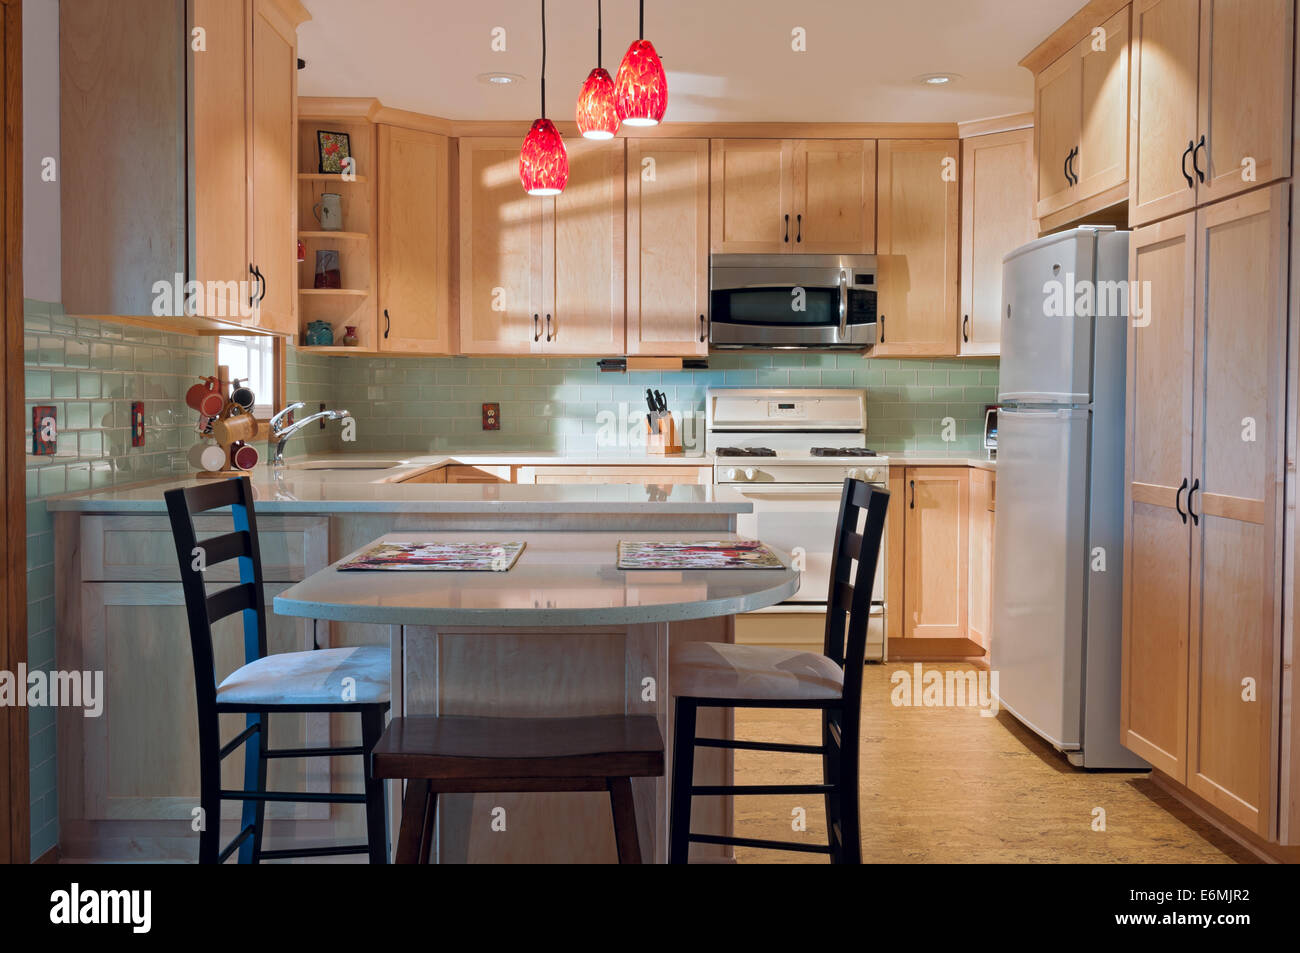 Newly remodeled kitchen interior with cork floors maple ...